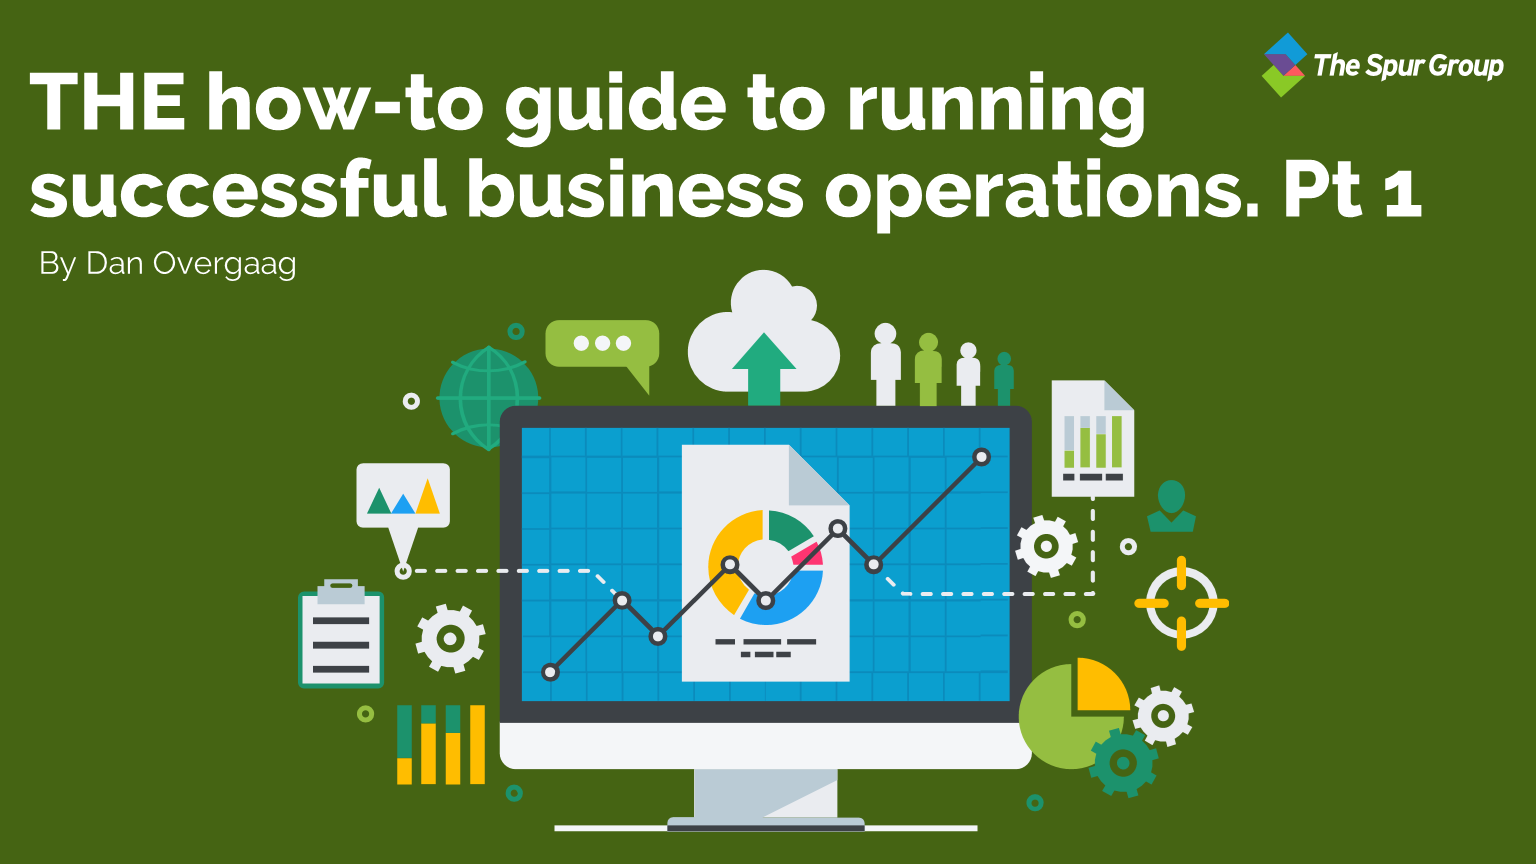 THE how-to guide to running successful business operations. Pt 1